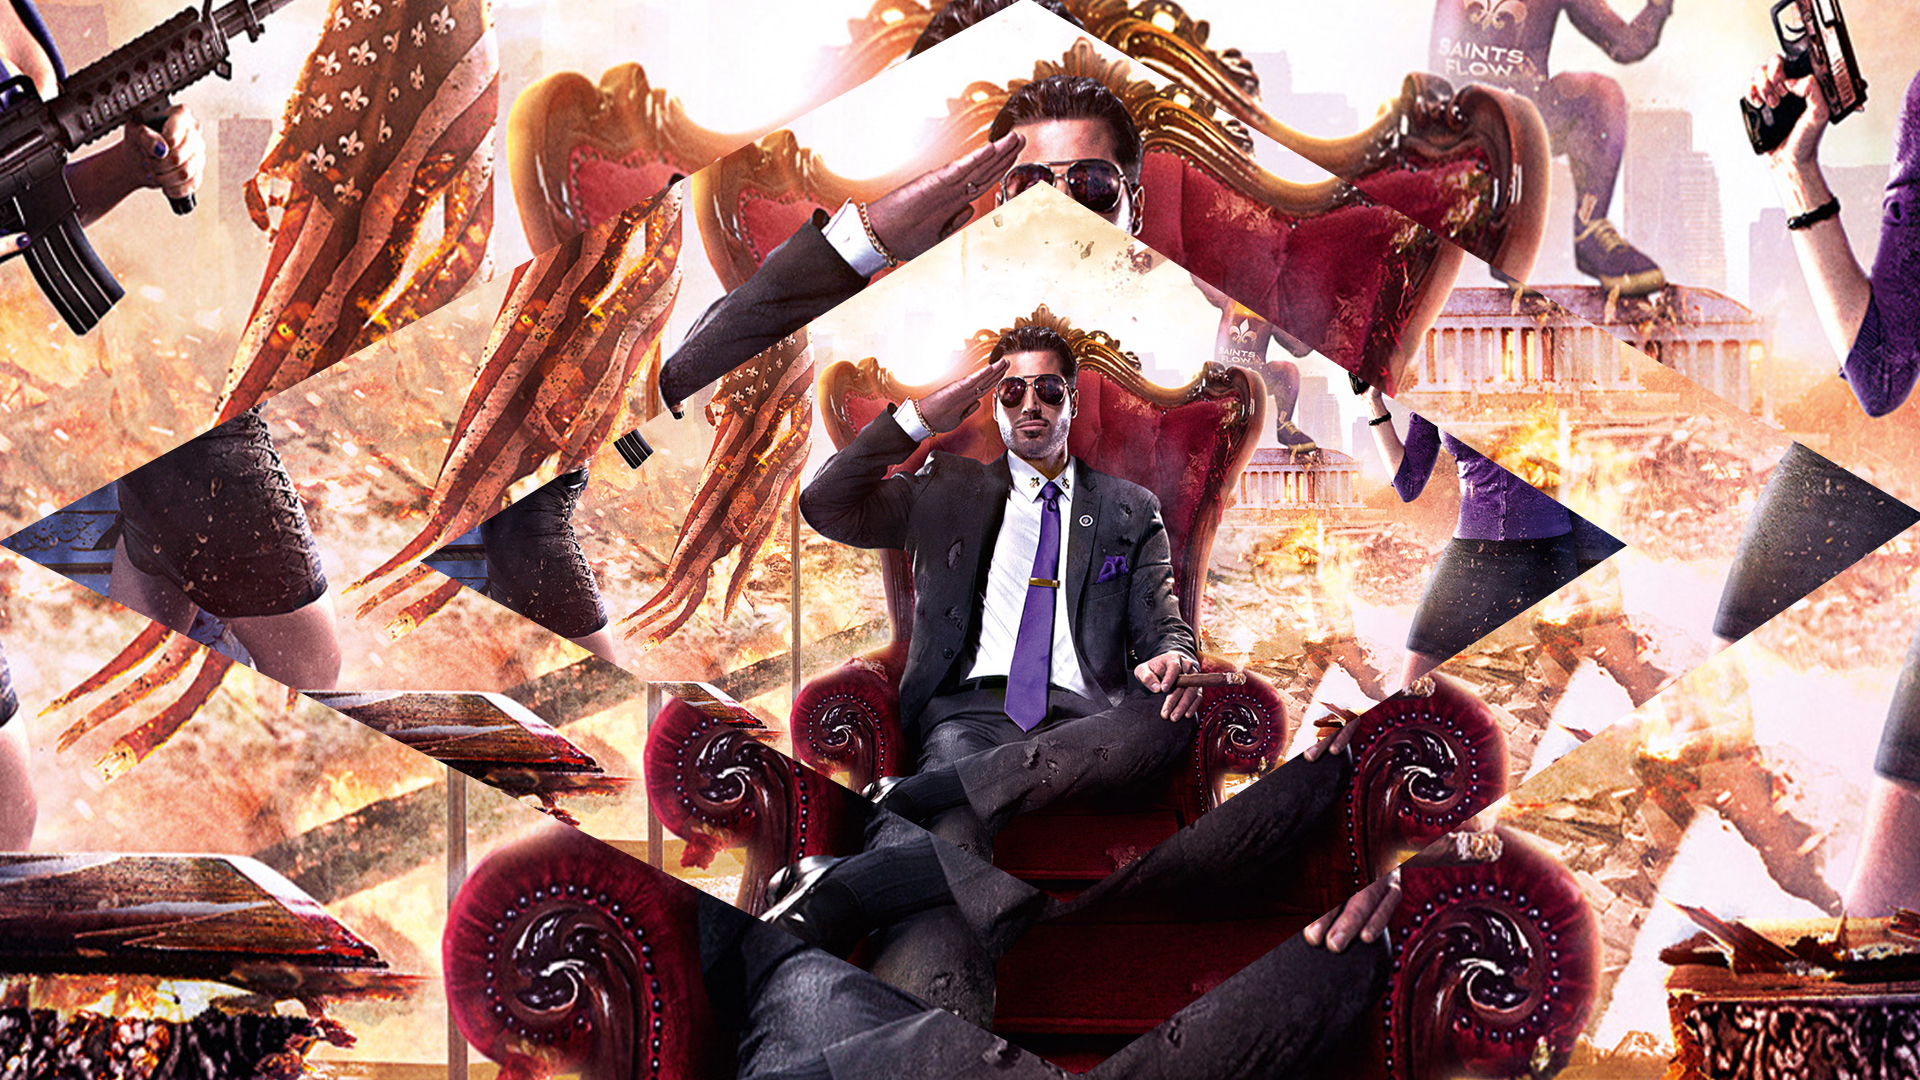 Saints Row Iv Wallpaper By Dinamito3000 On Deviantart